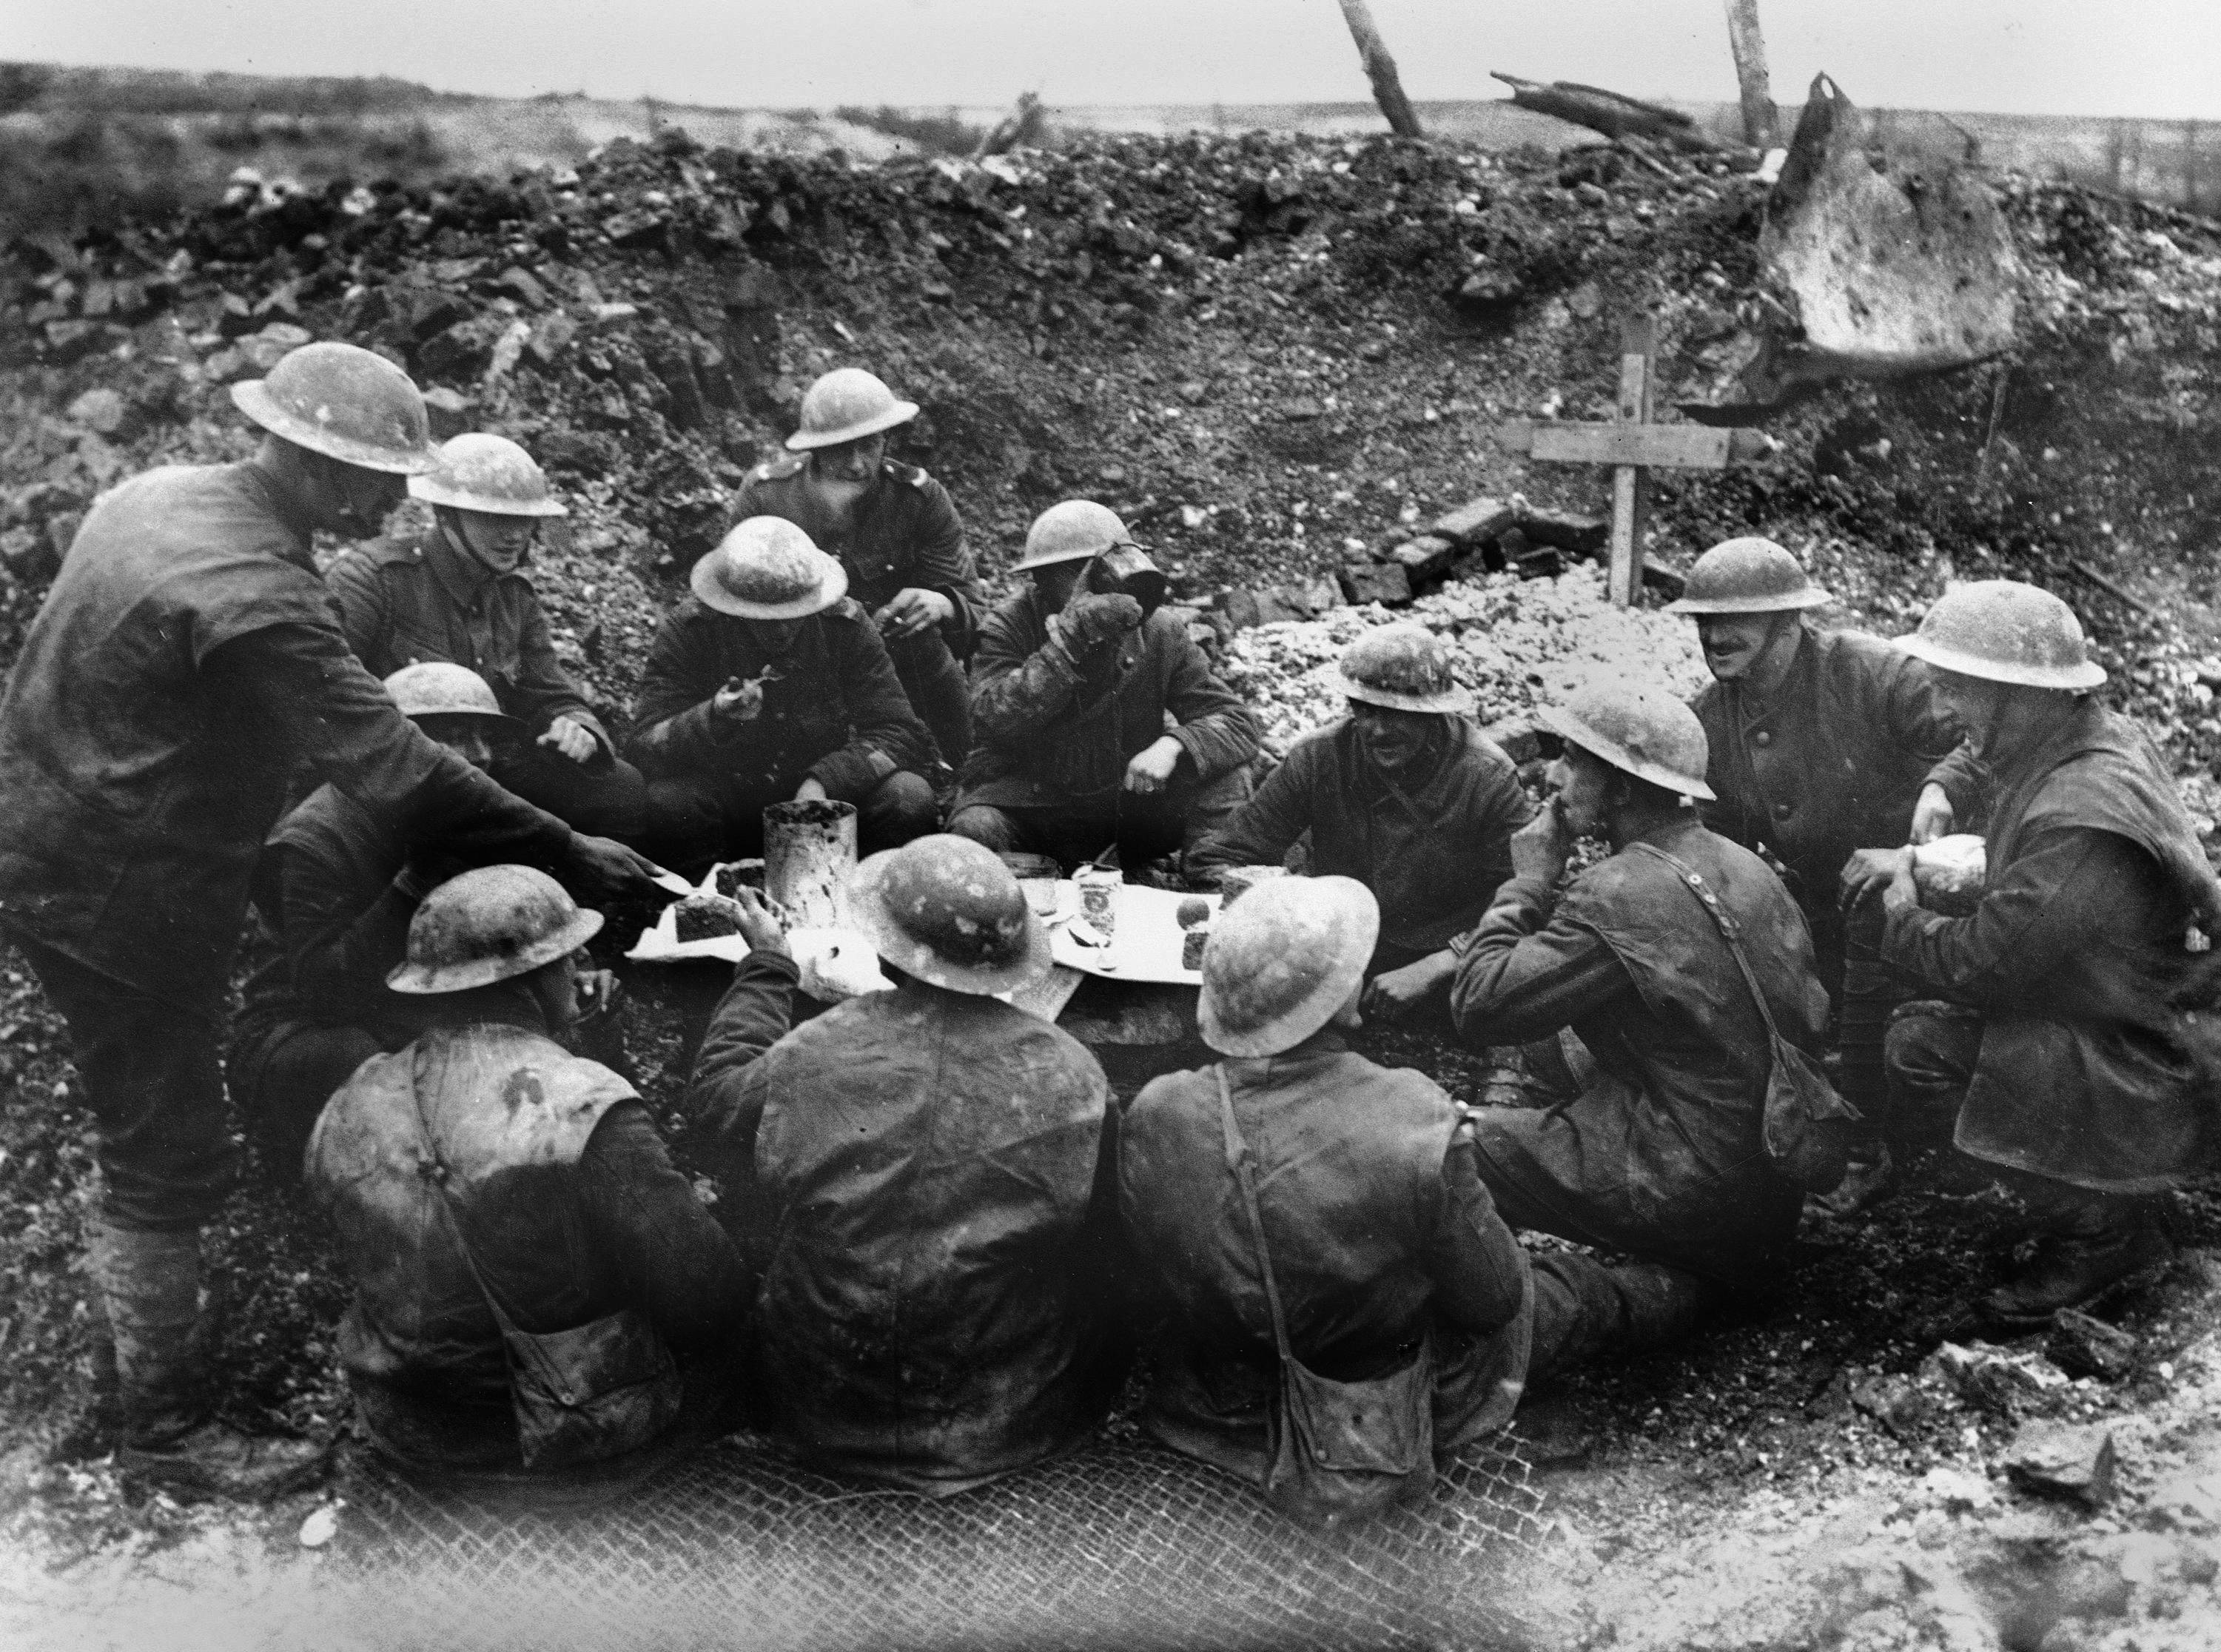 28 OF 100: In this undated file photo, Allied soldiers eat and drink in a shell hole in France during World War I.